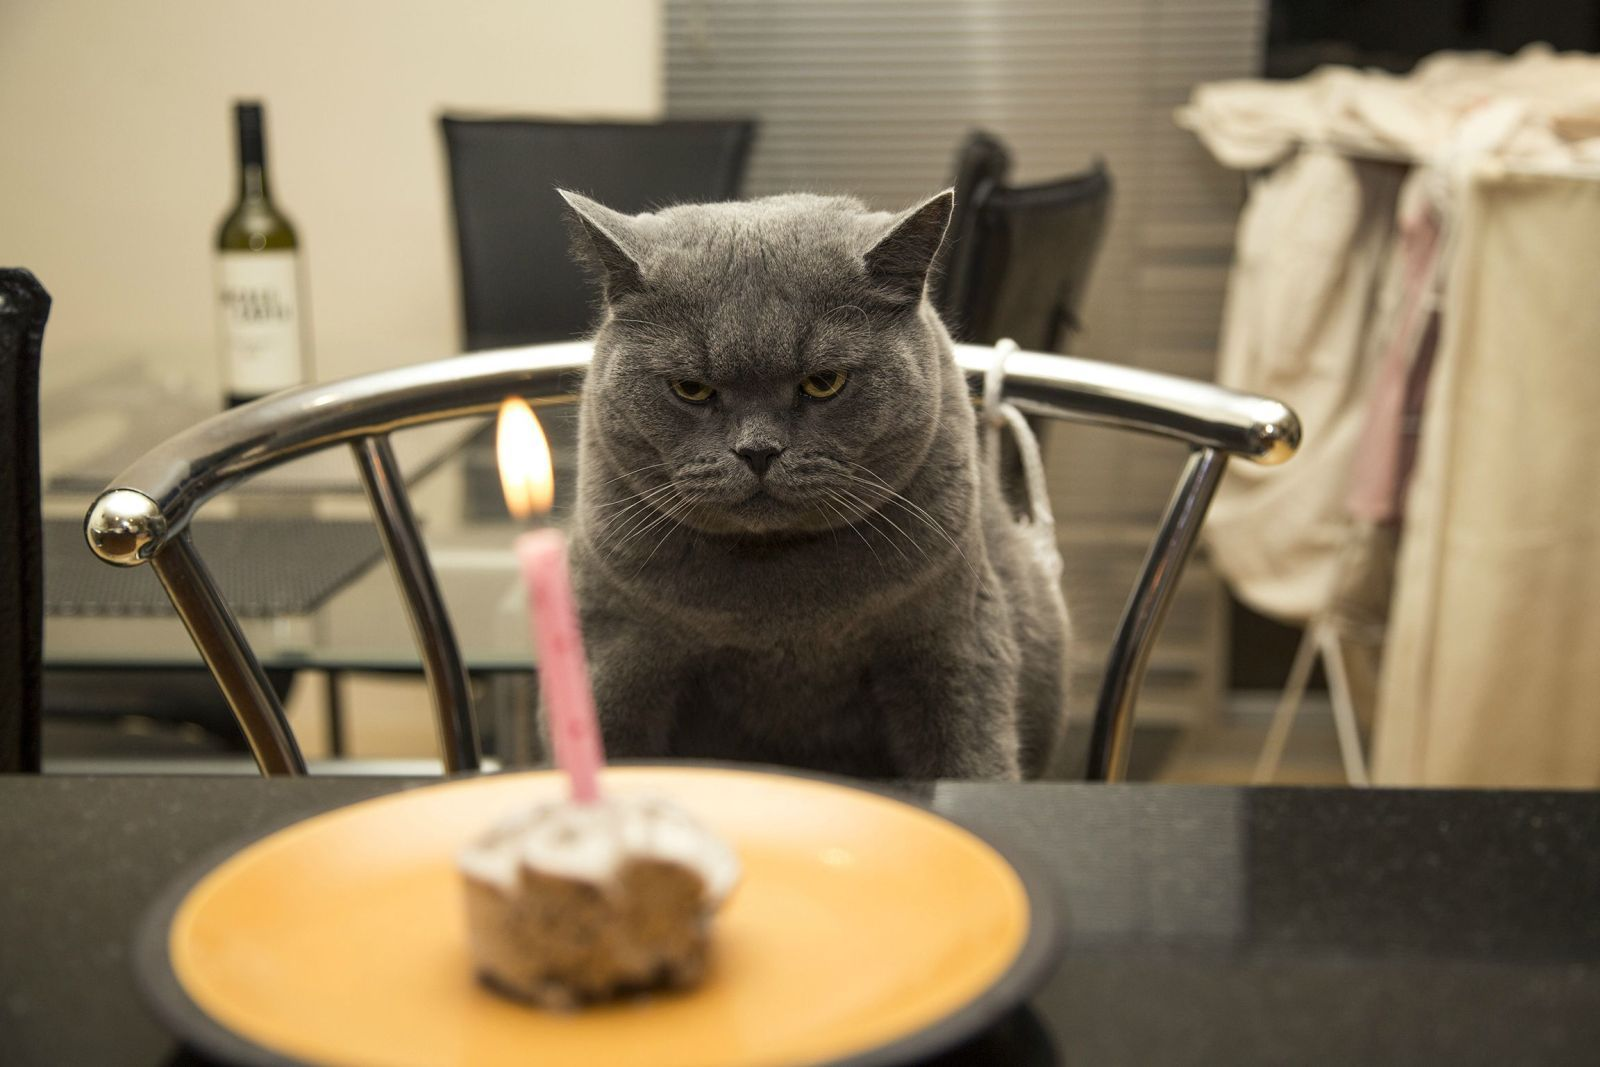 http://www.skunkwire.com/wp-content/uploads/2014/01/happy-birthday-cat.jpg